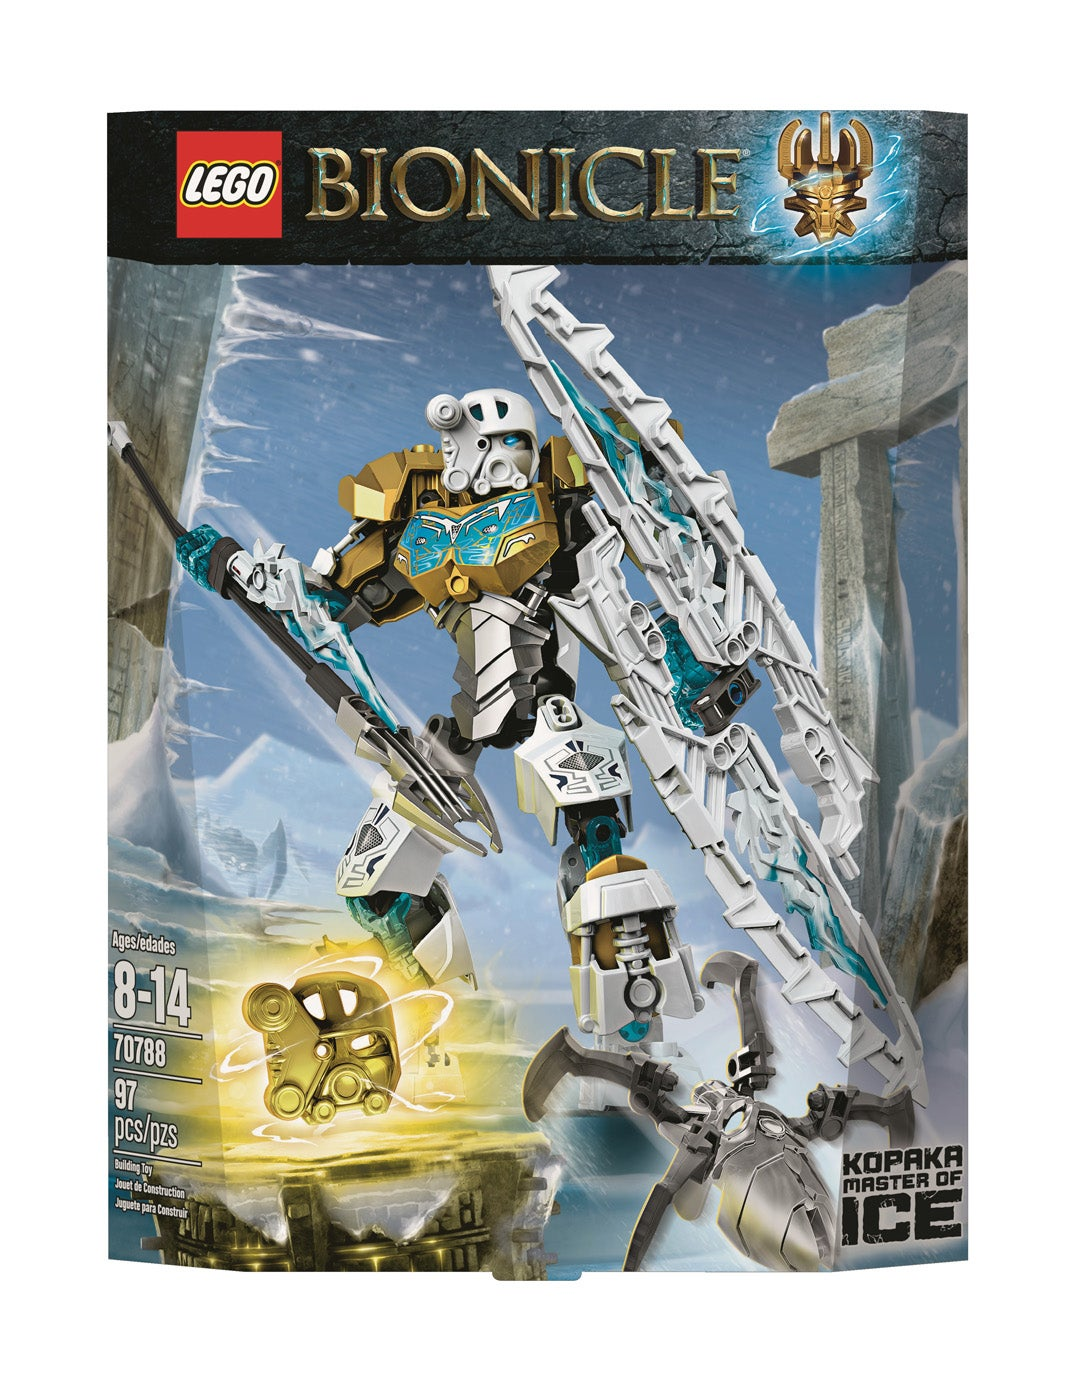 LEGO Bionicle Triumphantly Returns In January